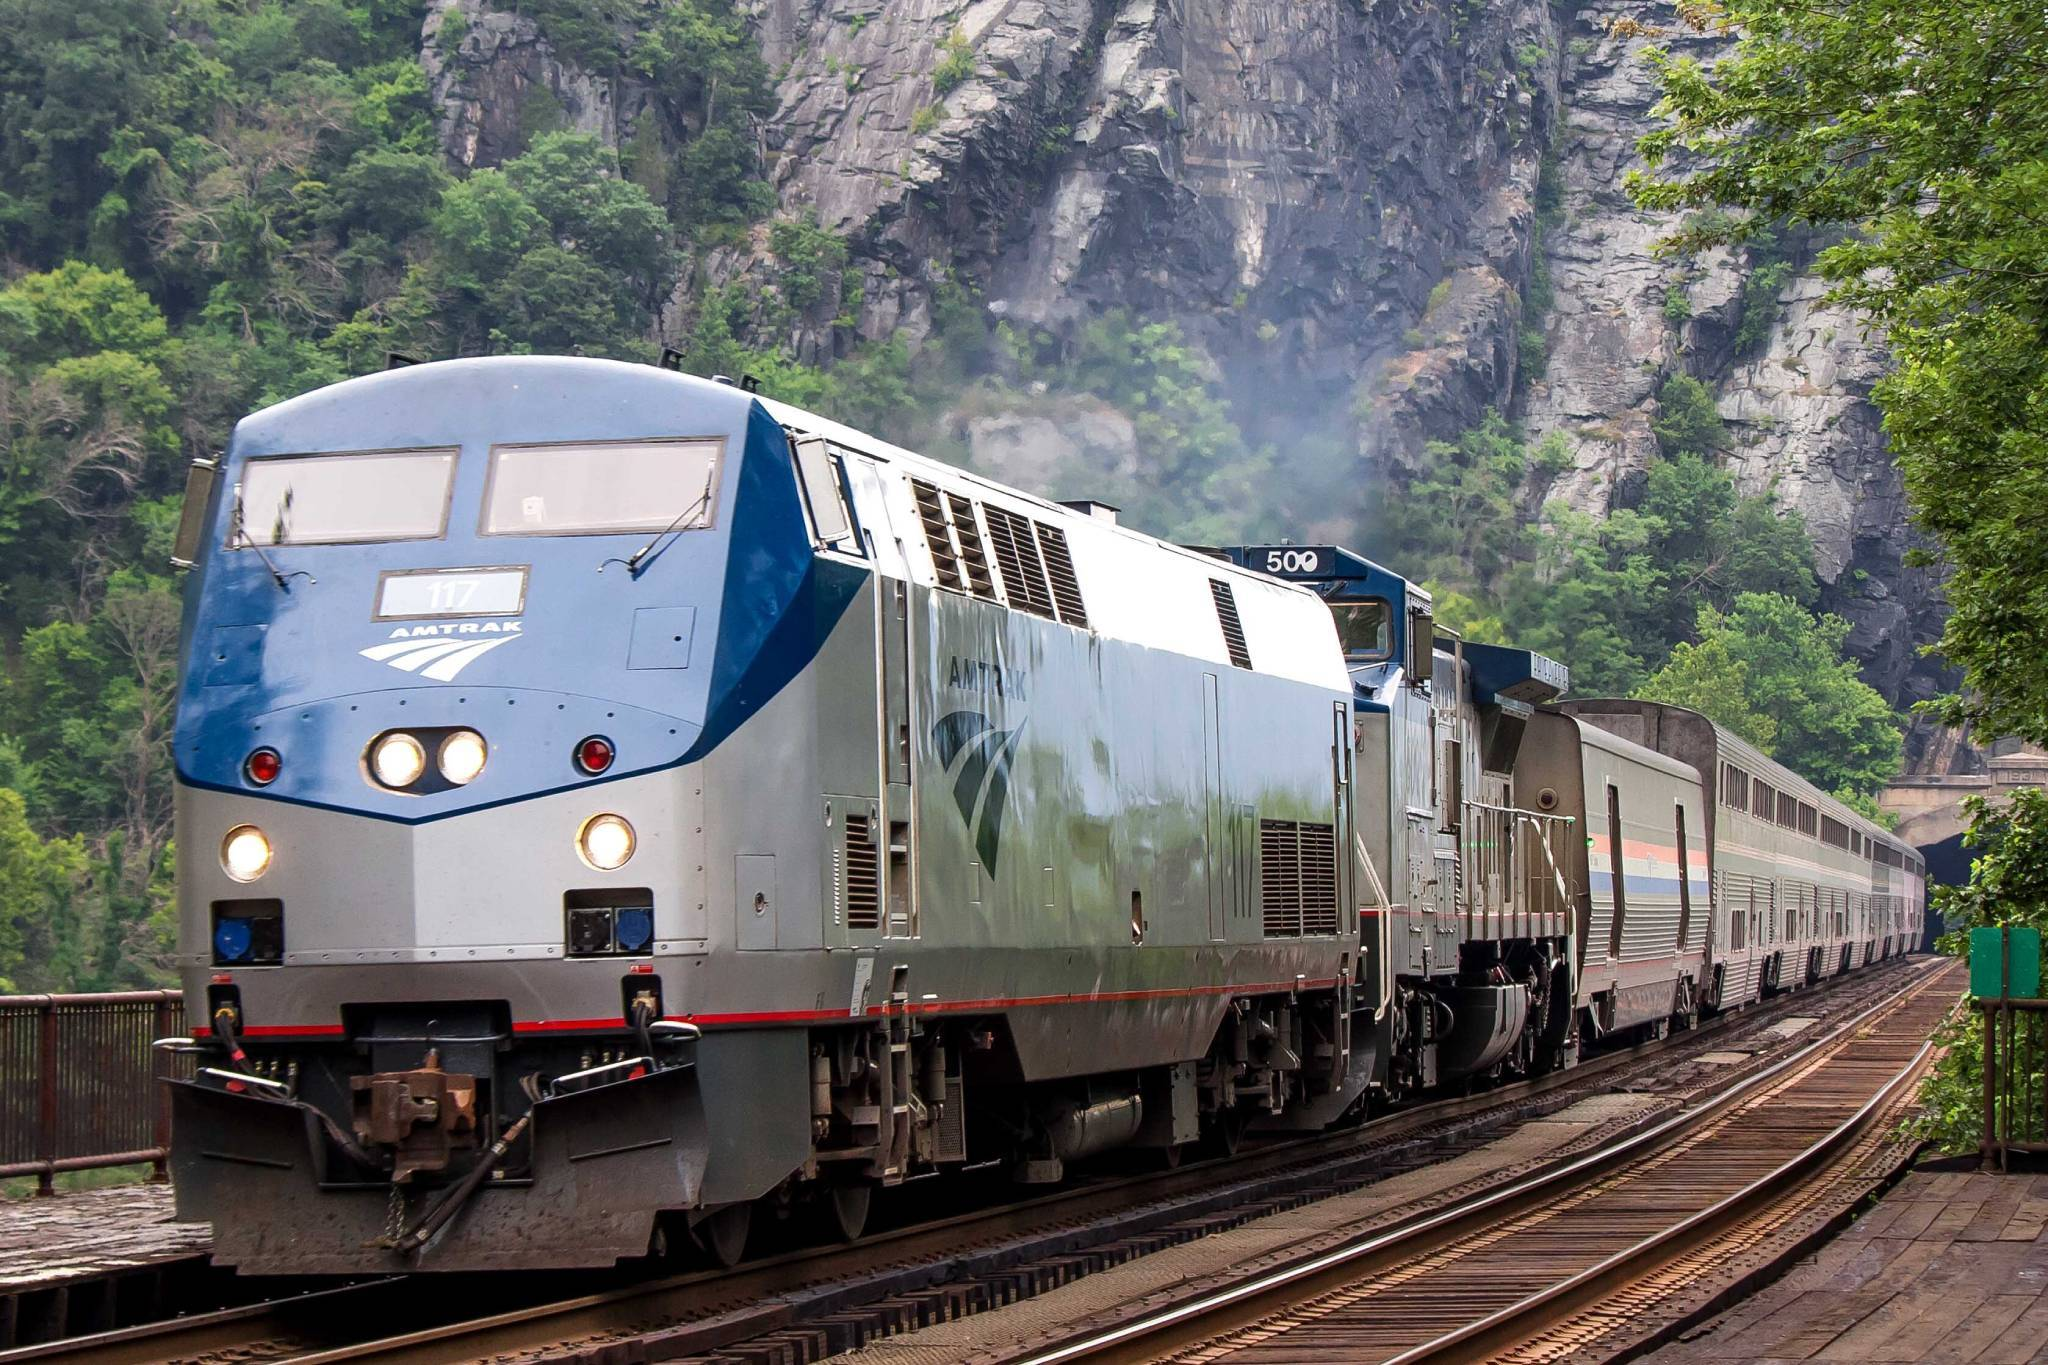 Here is what Amtrak rides might look like post-pandemic